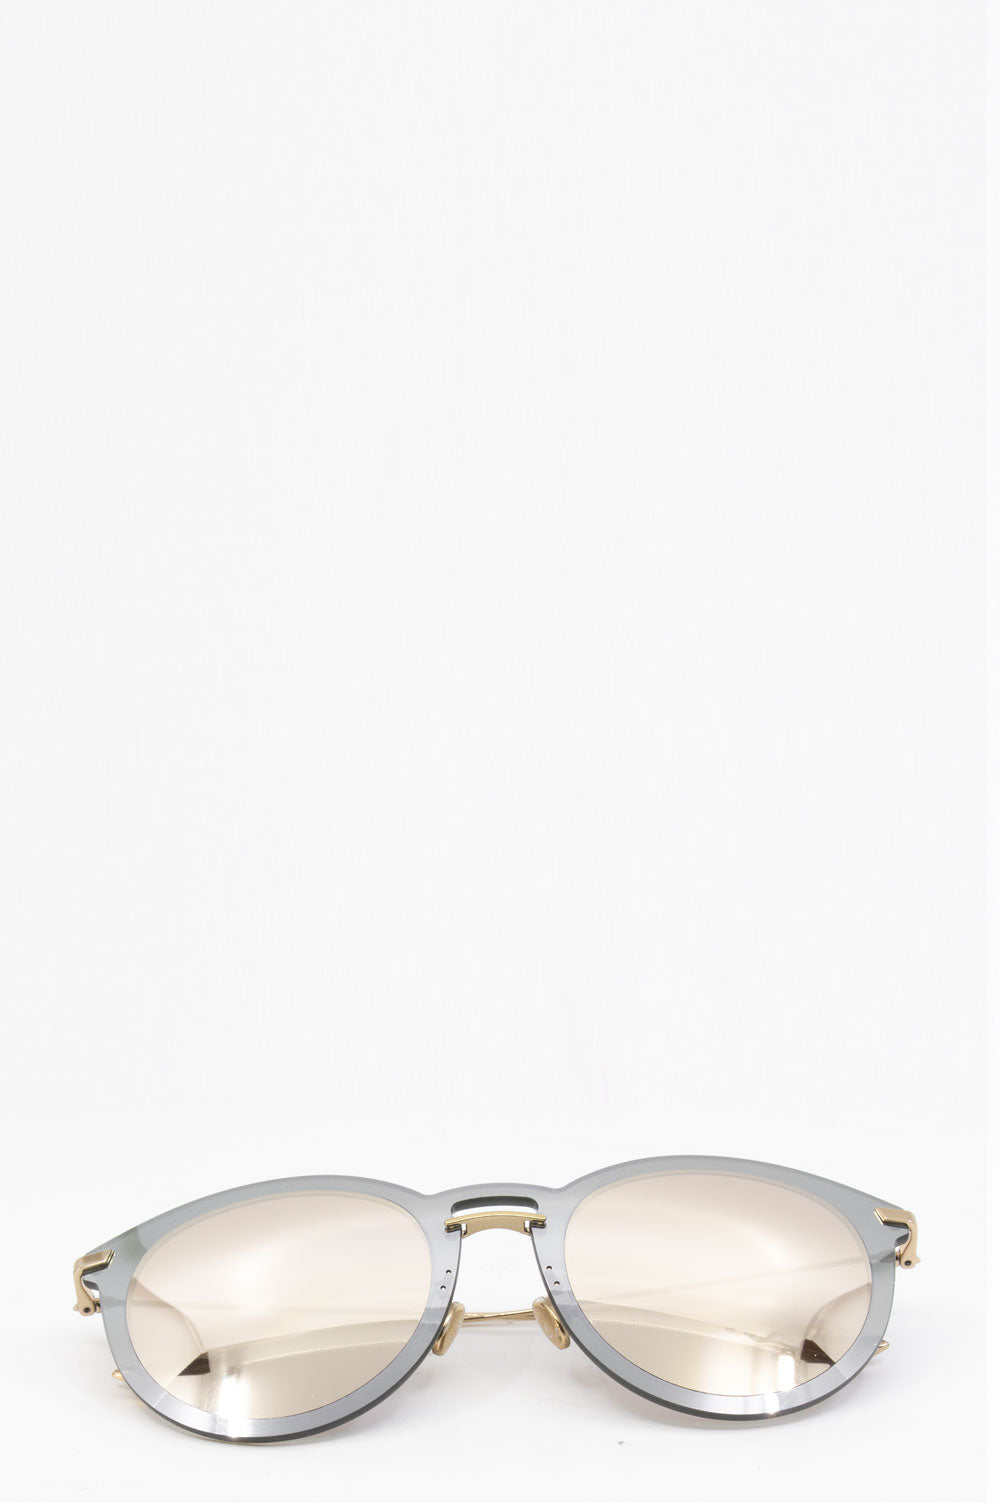 CHRISTIAN DIOR HOMME Sunglasses